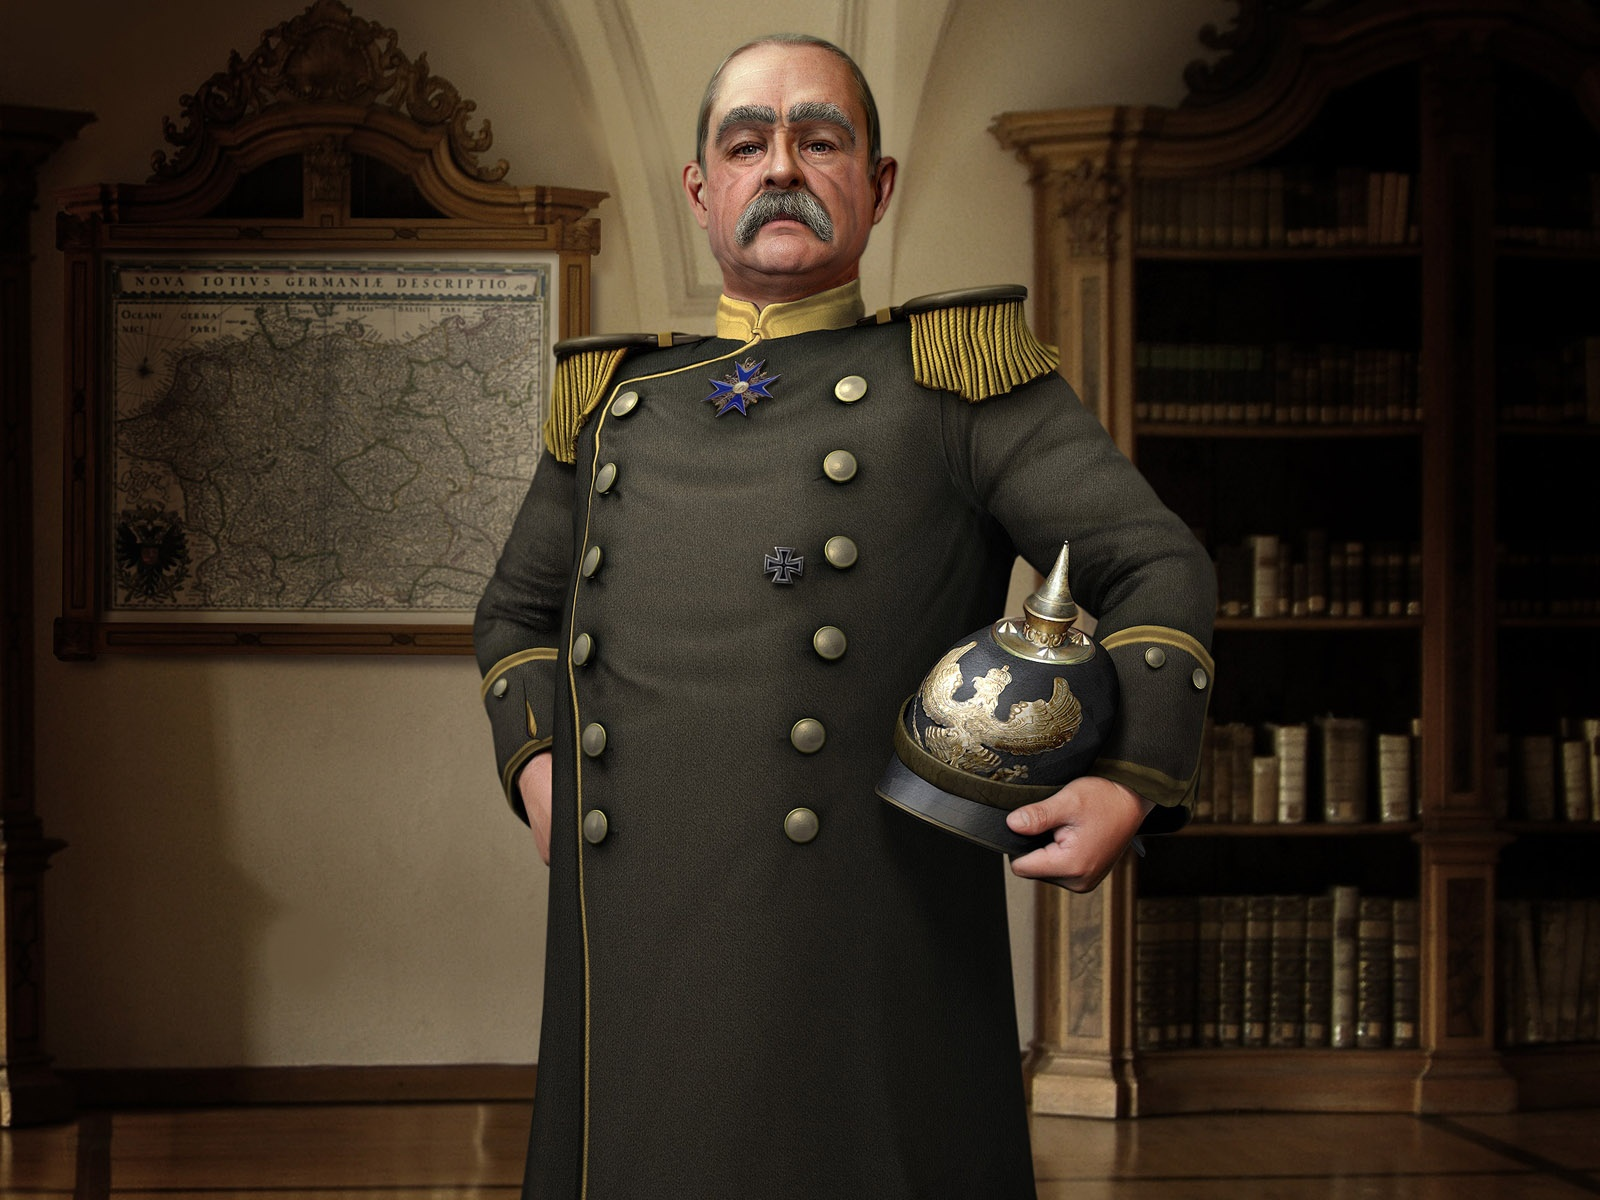 1500x500 Sid Meier's Civilization V Leaders, game, walls